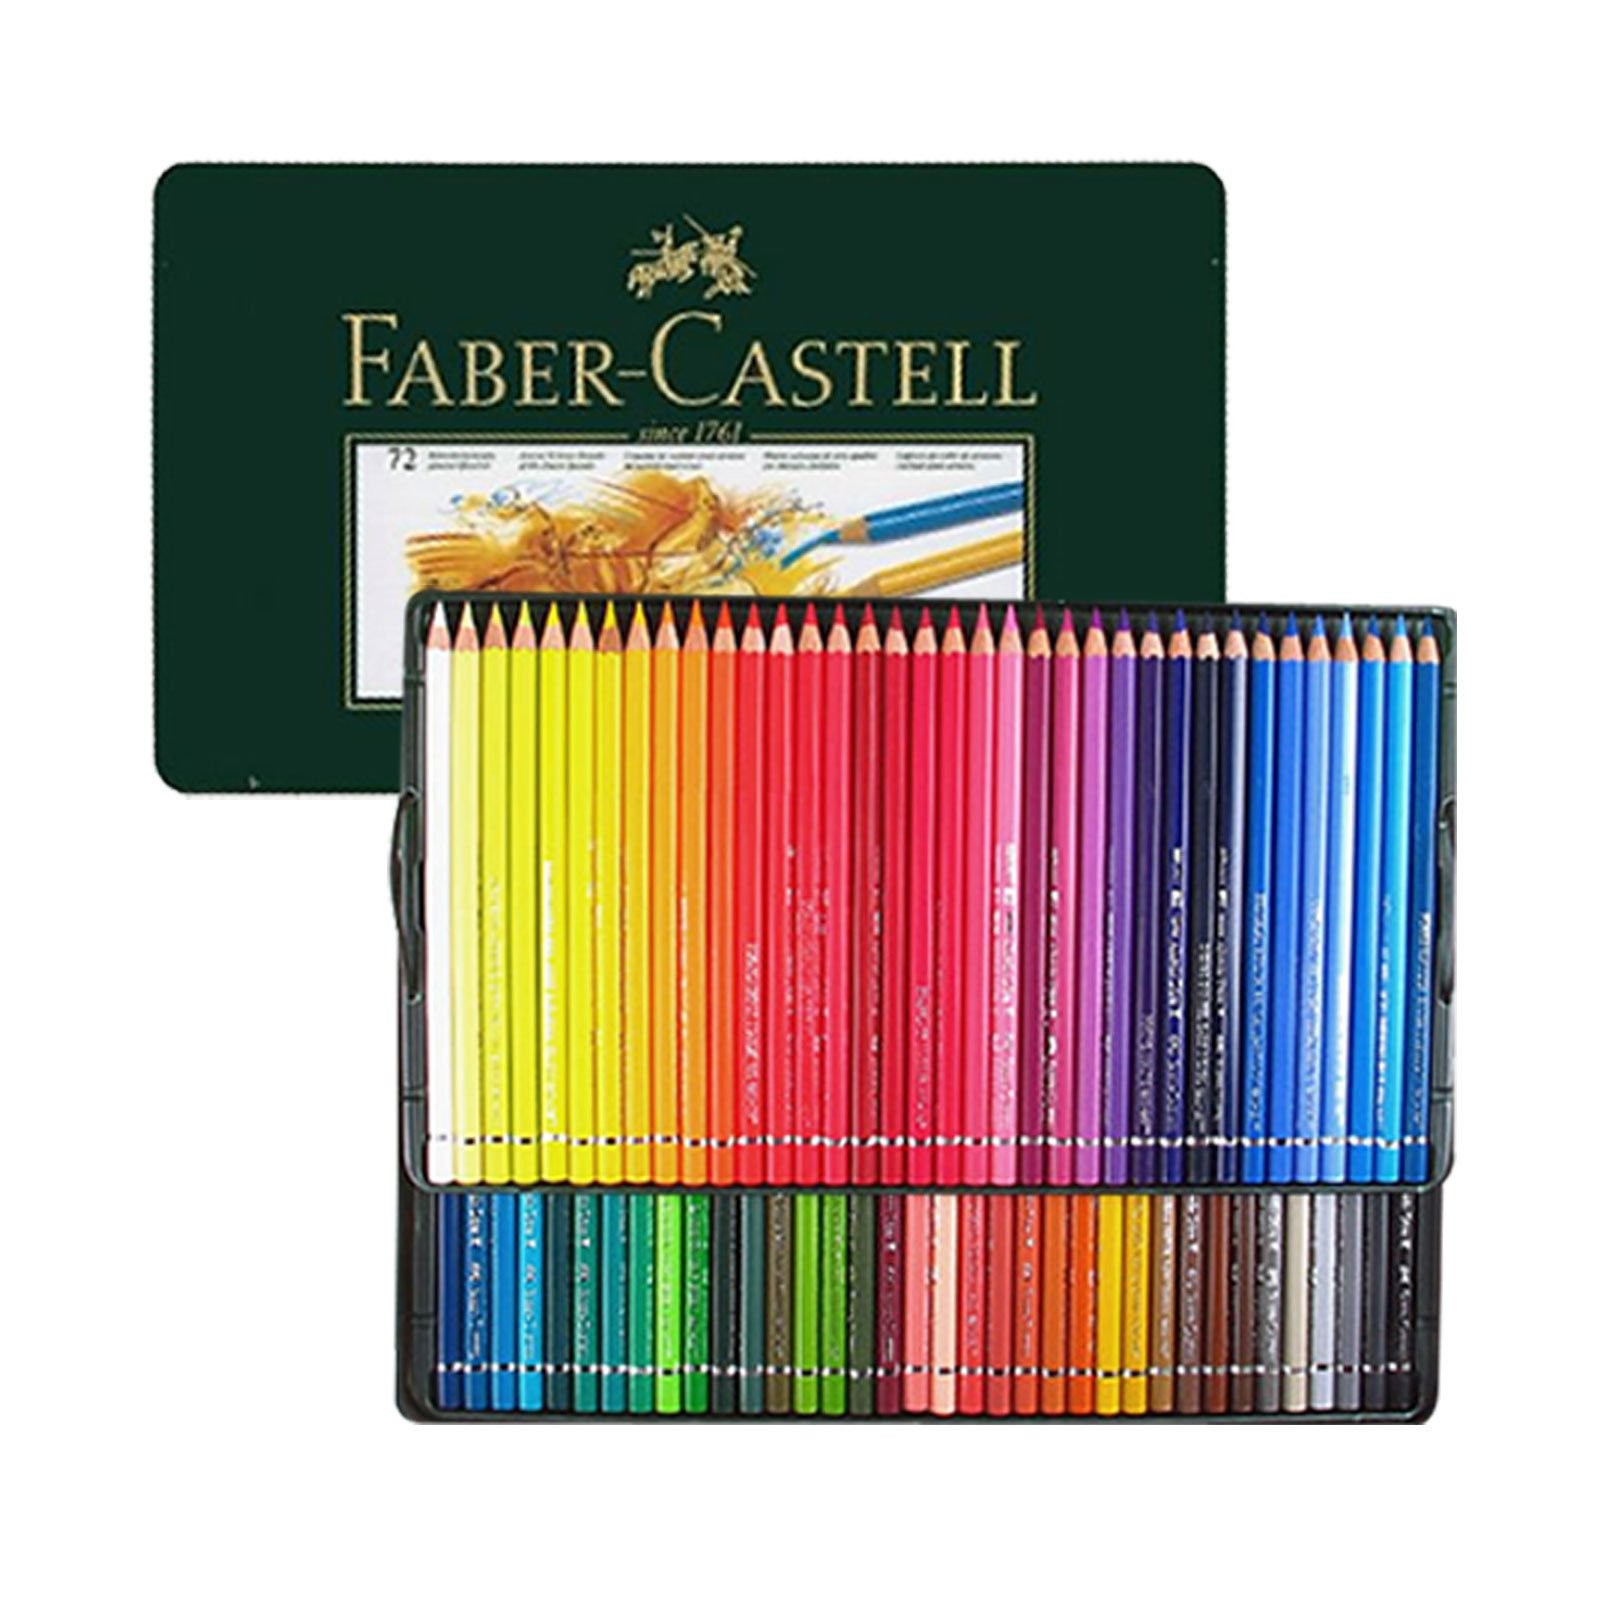 Faber Castell Polychromos Artists's color Pencils 72 Colors In Metal Tin by Polychromos Color Pencils